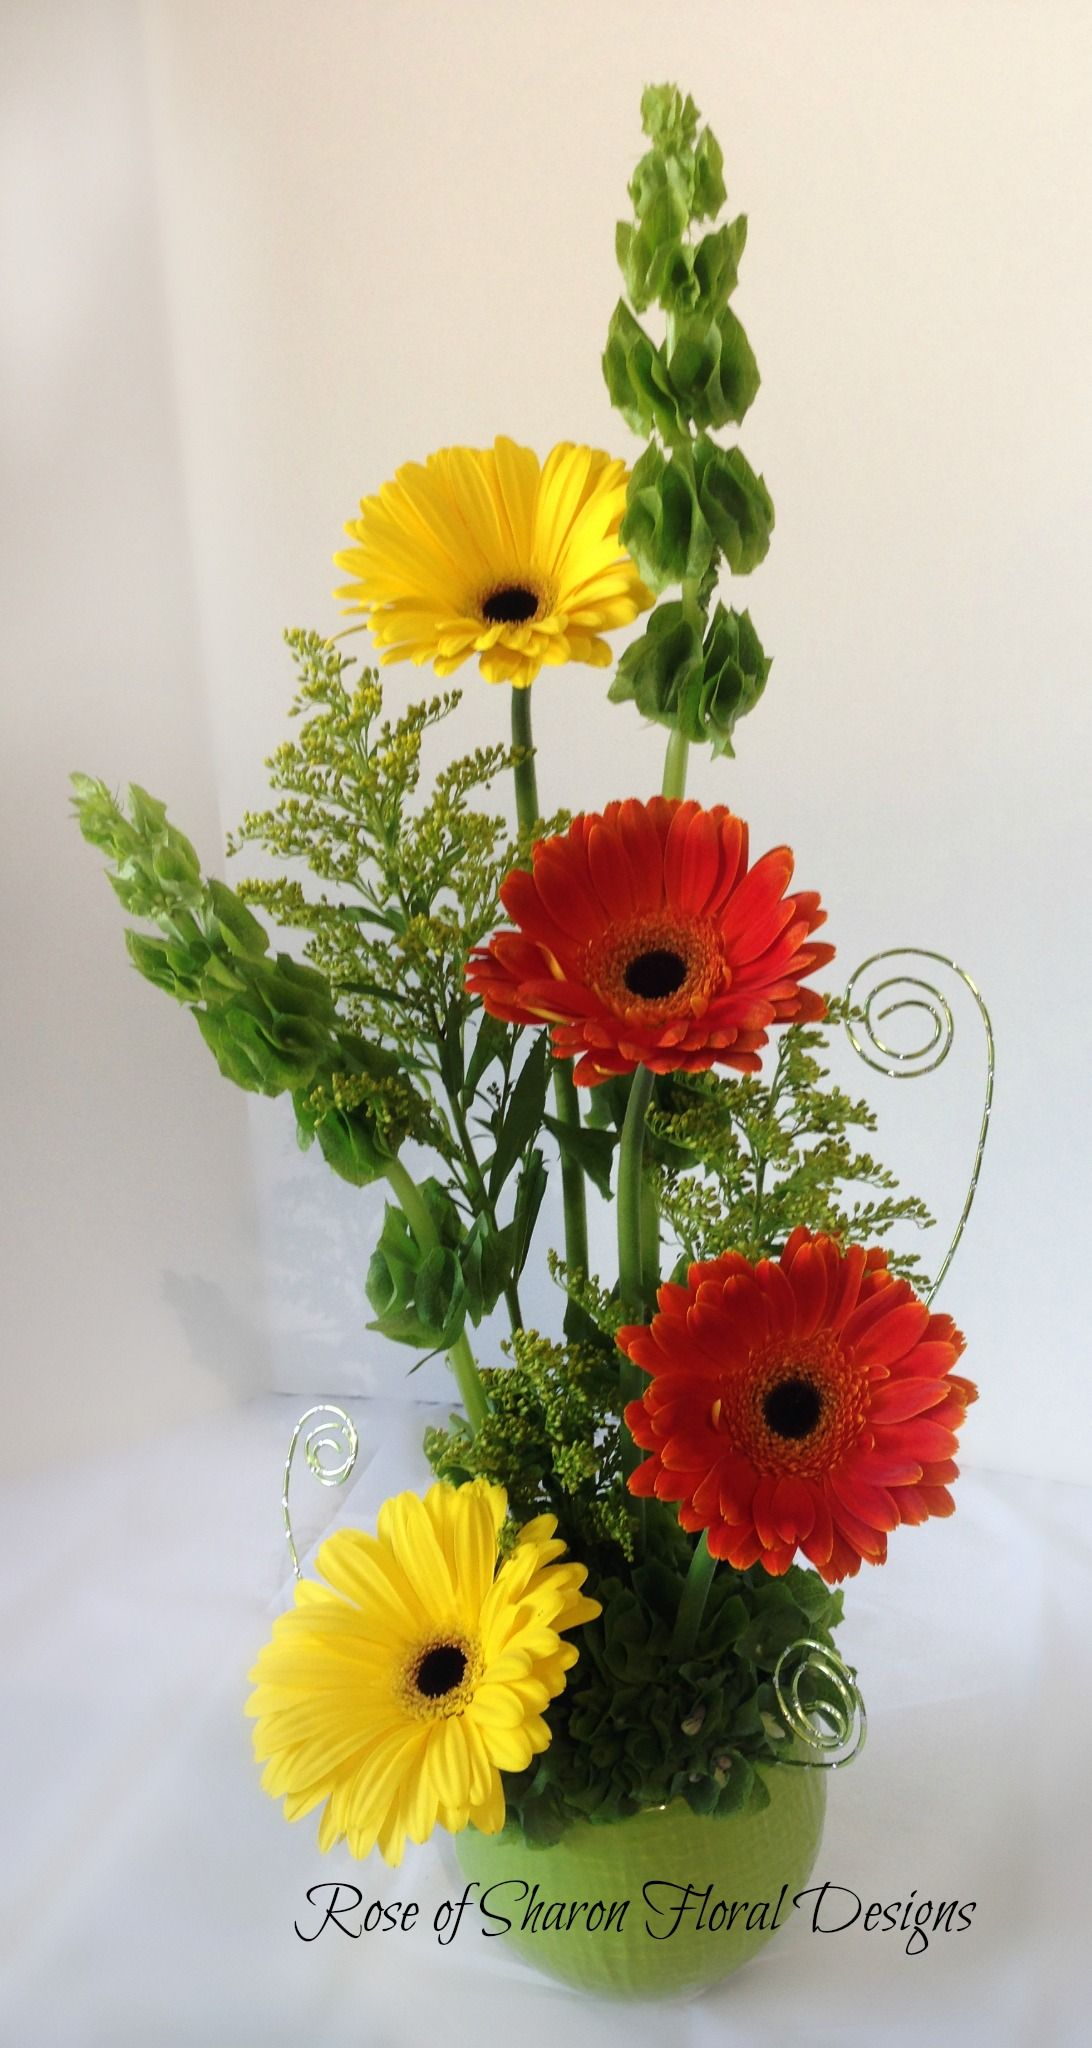 Rose of sharon floral designs daisy and bells of ireland gerbera rose of sharon floral designs daisy and bells of ireland arrangement izmirmasajfo Choice Image